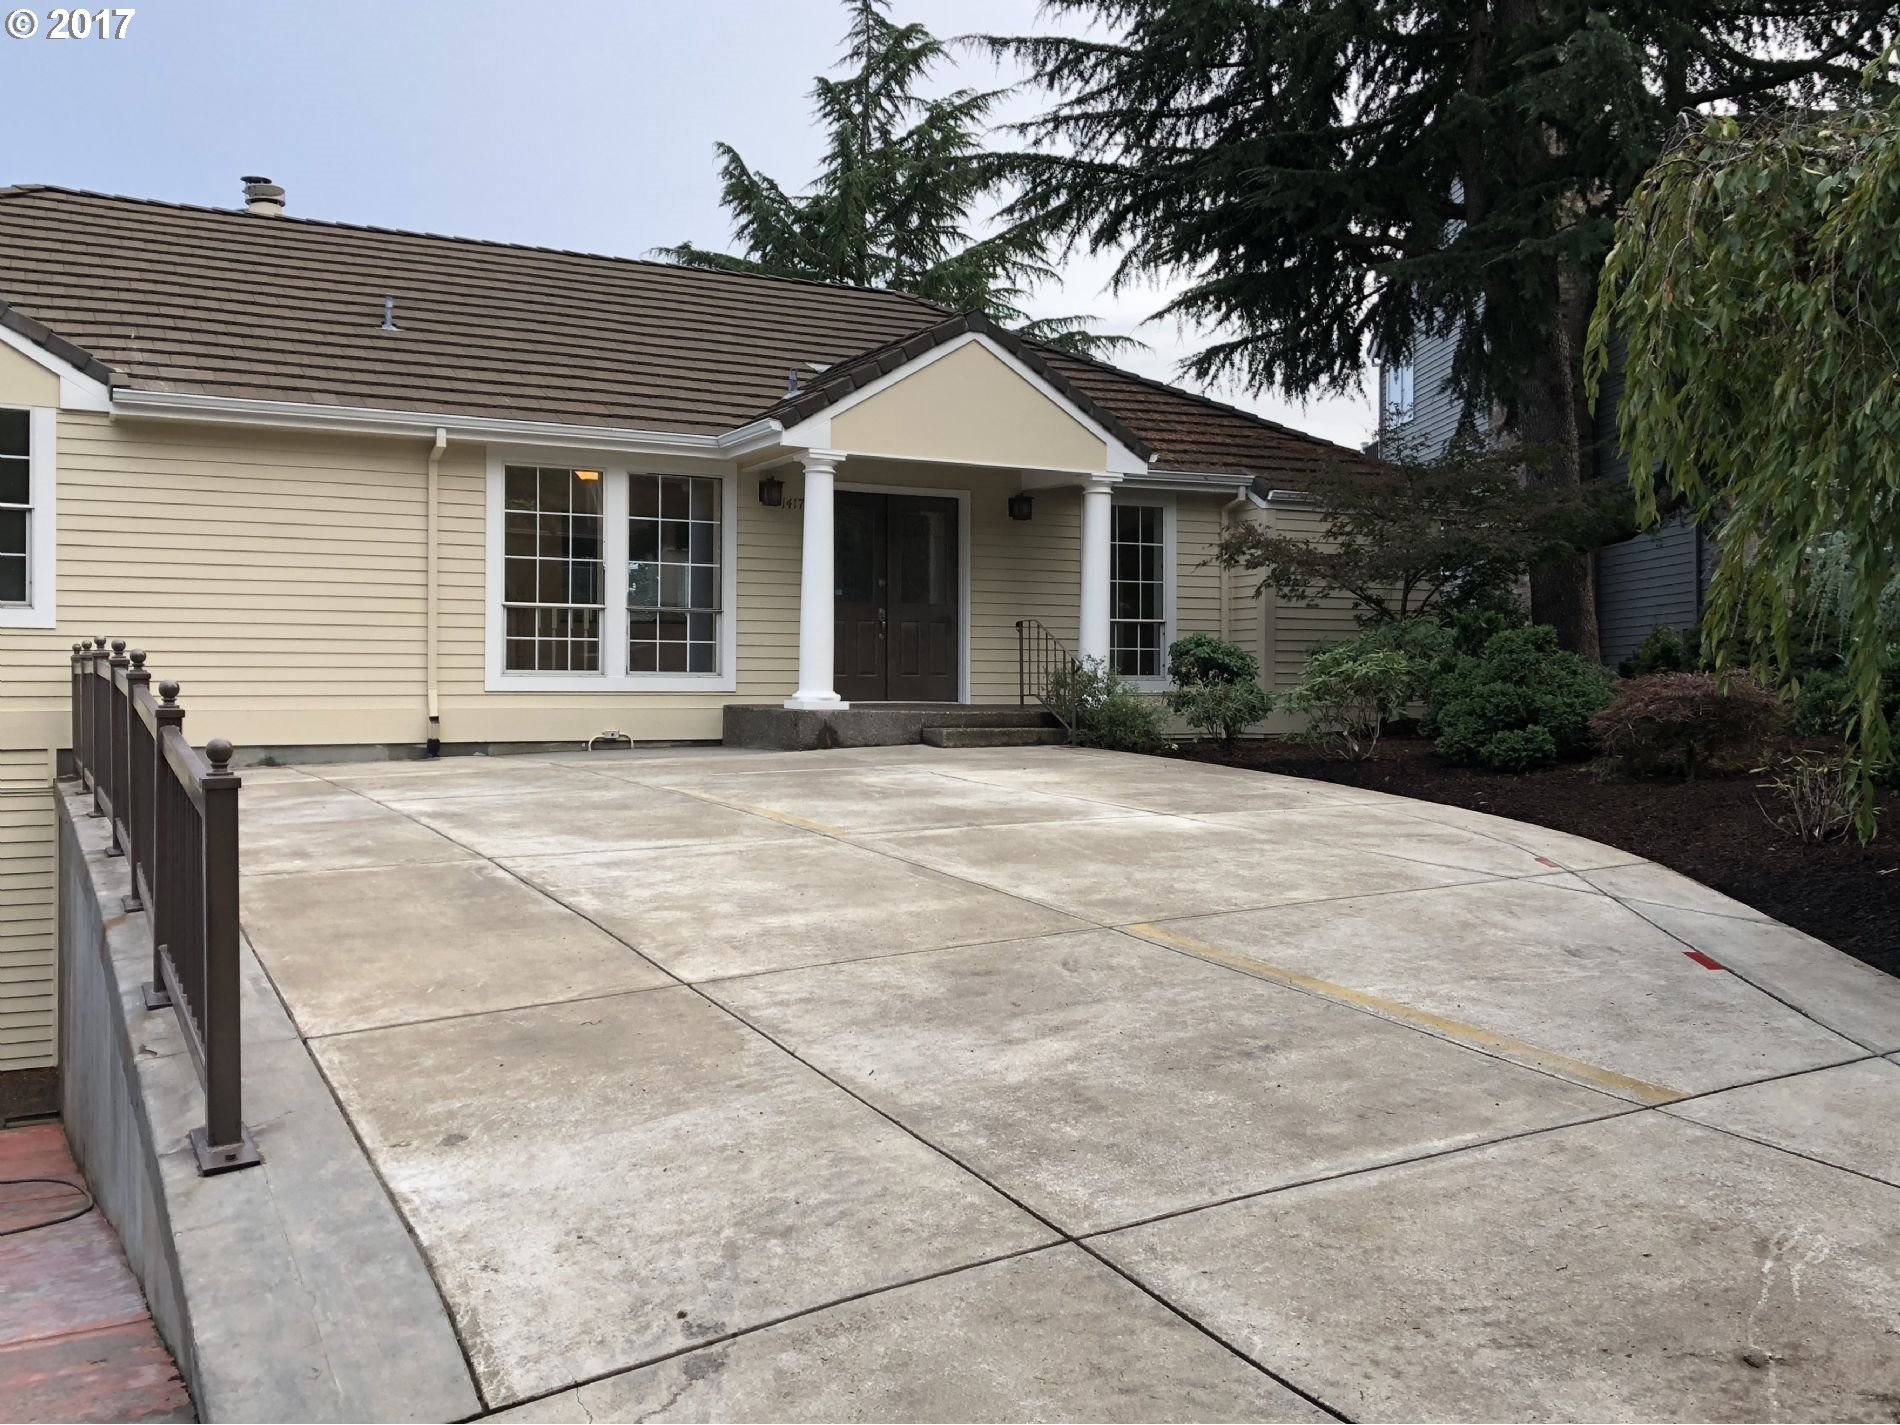 Gorgeous property with recent renovations including new hardwood floors, appliances, and much more. Lots of parking and room for entertaining. Mt. Hood view on a quiet street with little traffic.